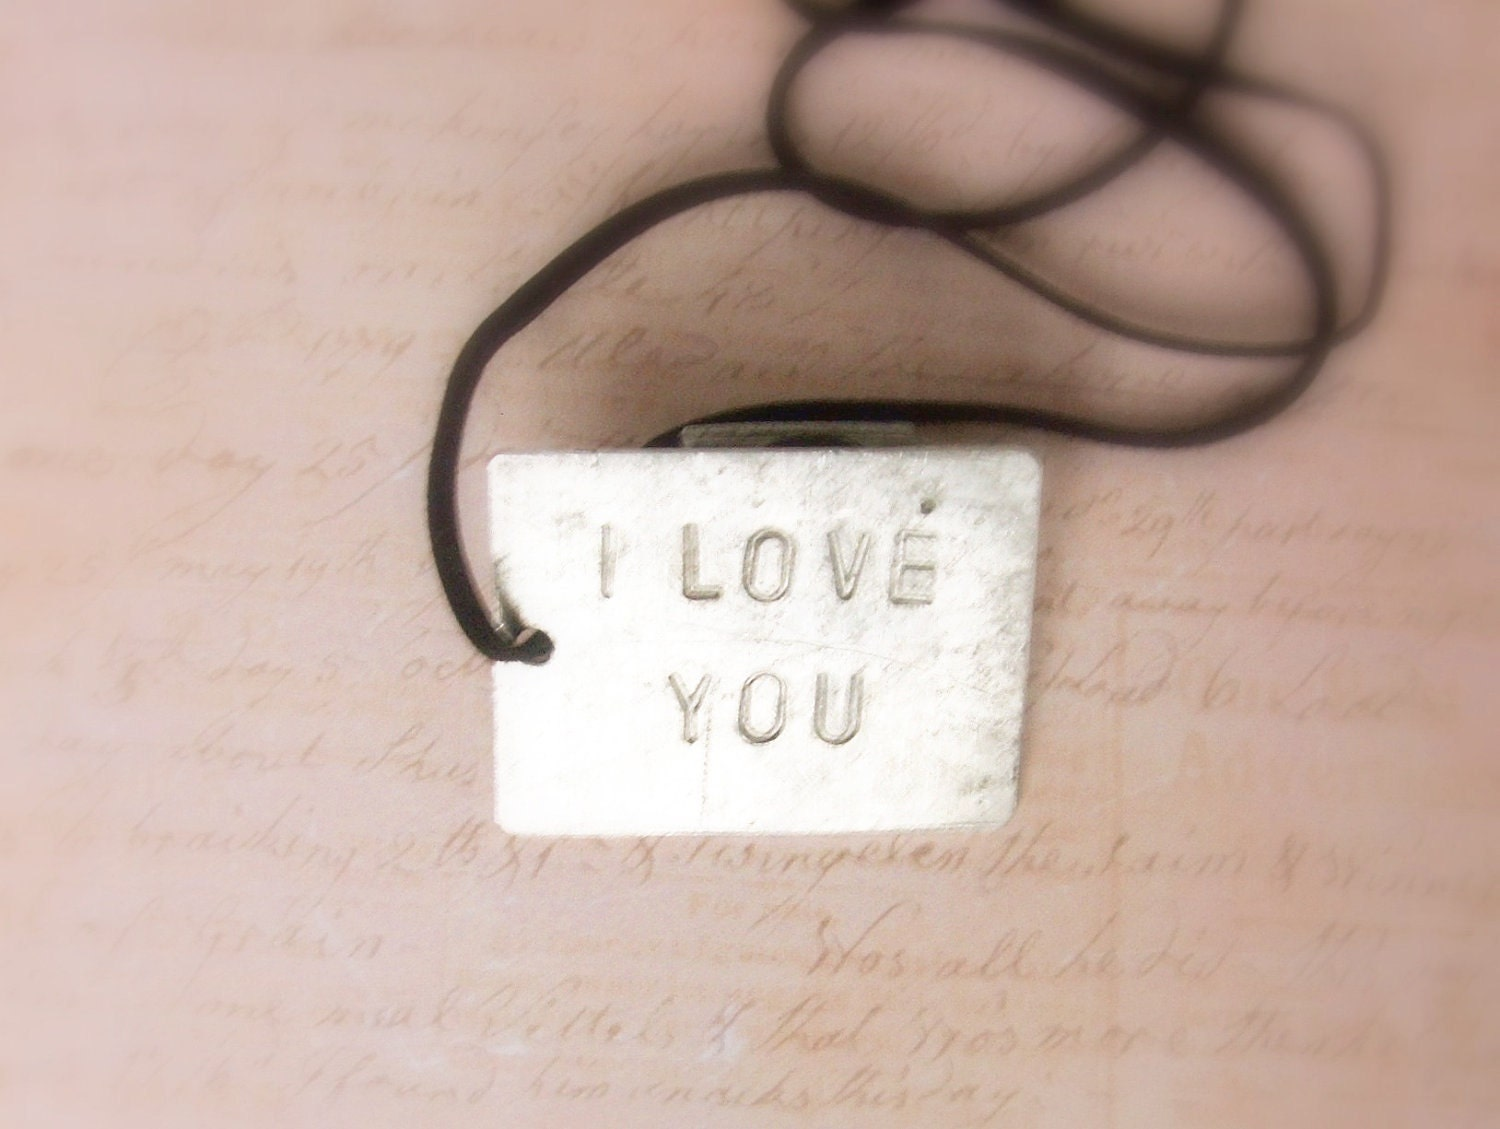 I LOVE YOU - hand stamped  Personalized necklace pendant - gift for him